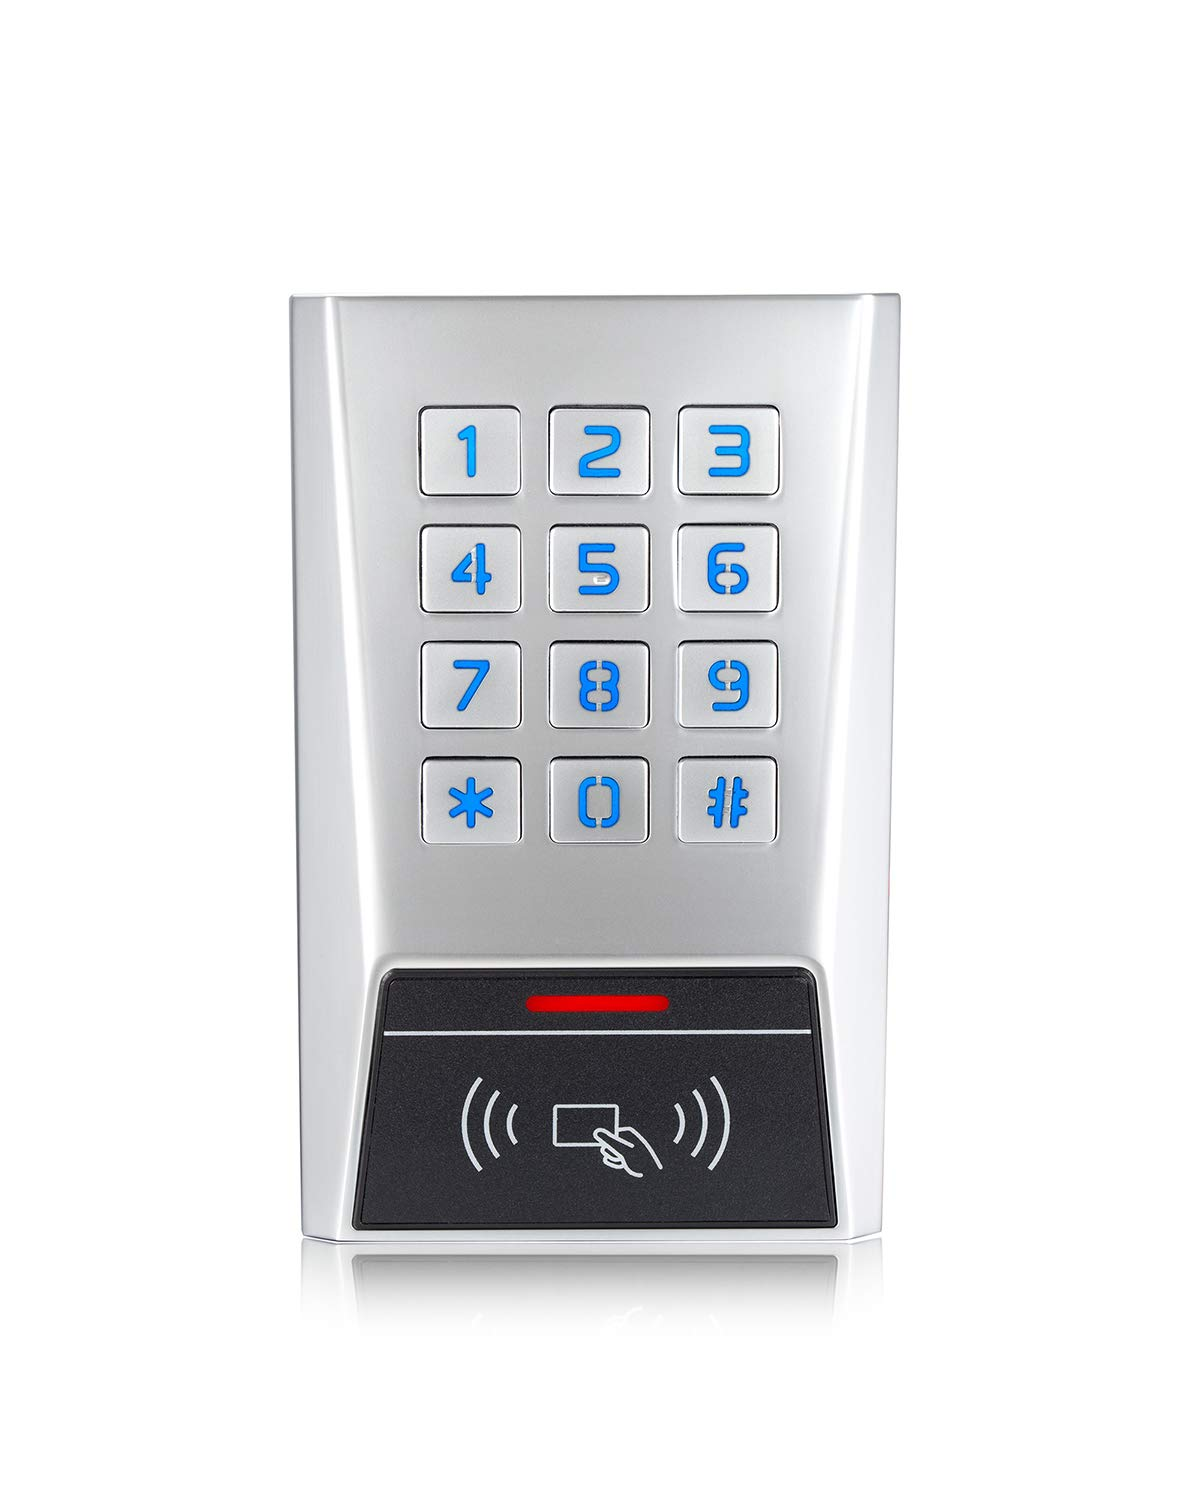 RFID Access Control Stand-Alone Keypad for Single Door Longwo BK2-EH Metal Housing Waterproof Outdoor and Indoor Wiegand Reader 26~37 Bits 1010 Users with a 10 Pack of Proximity Cards by LONGWO